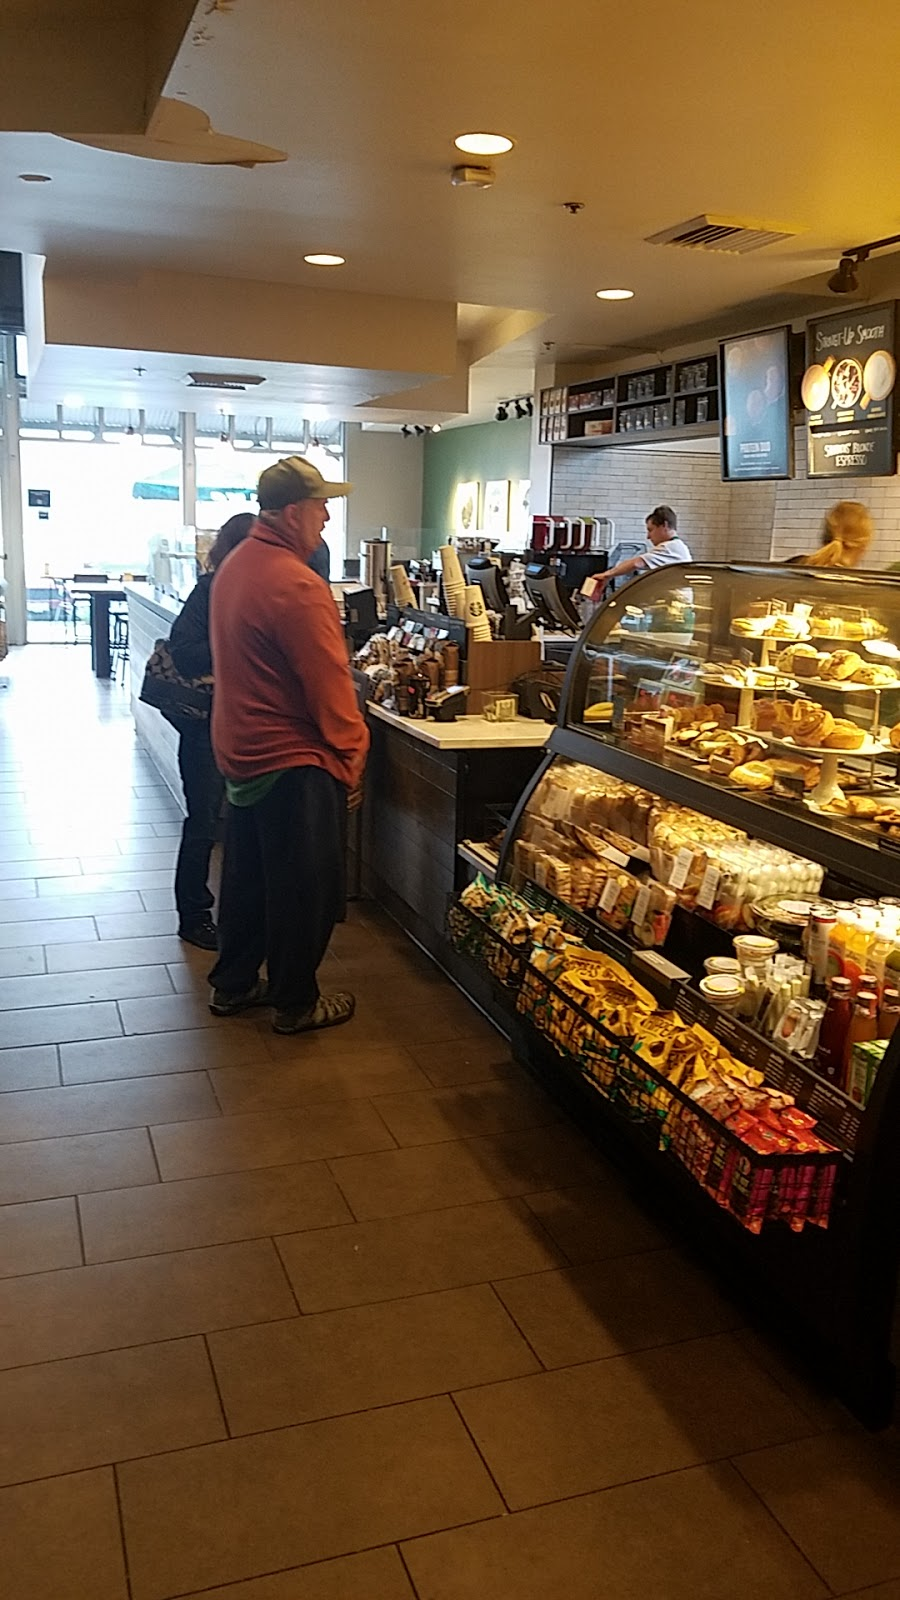 Starbucks | cafe | 704 E Perkins St, Ukiah, CA 95482, USA | 7074632615 OR +1 707-463-2615